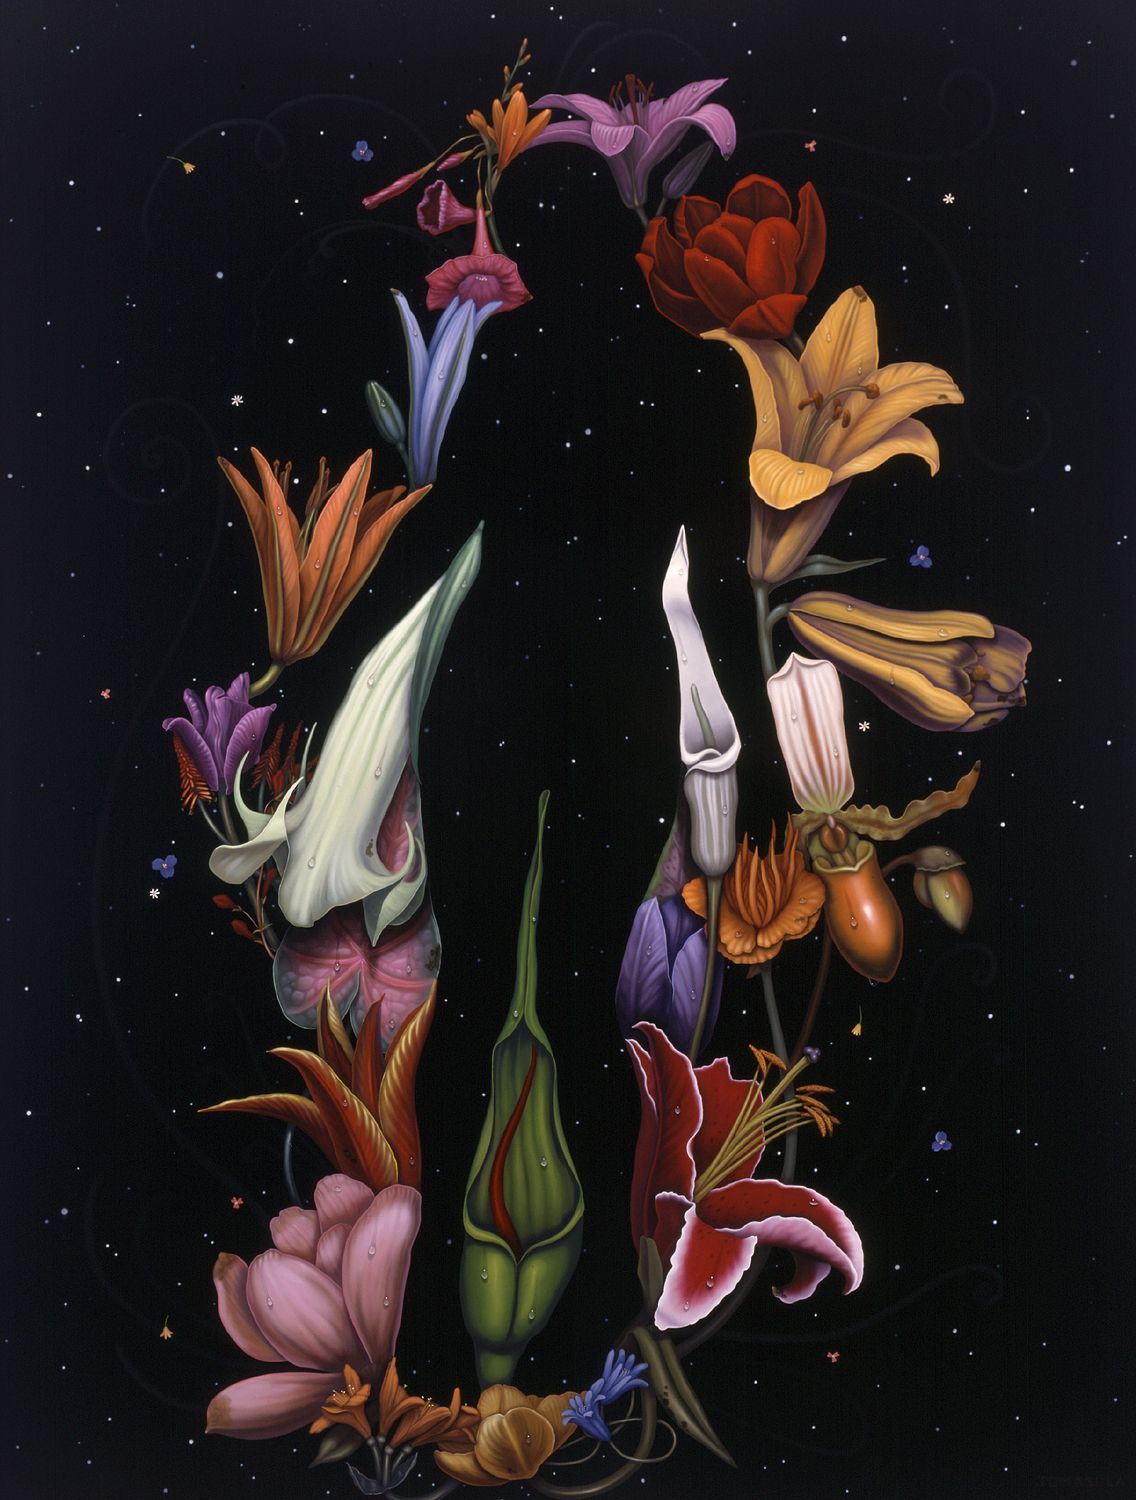 maria tomasula, Lacuna, 2004, oil on panel, 48 x 36 inches